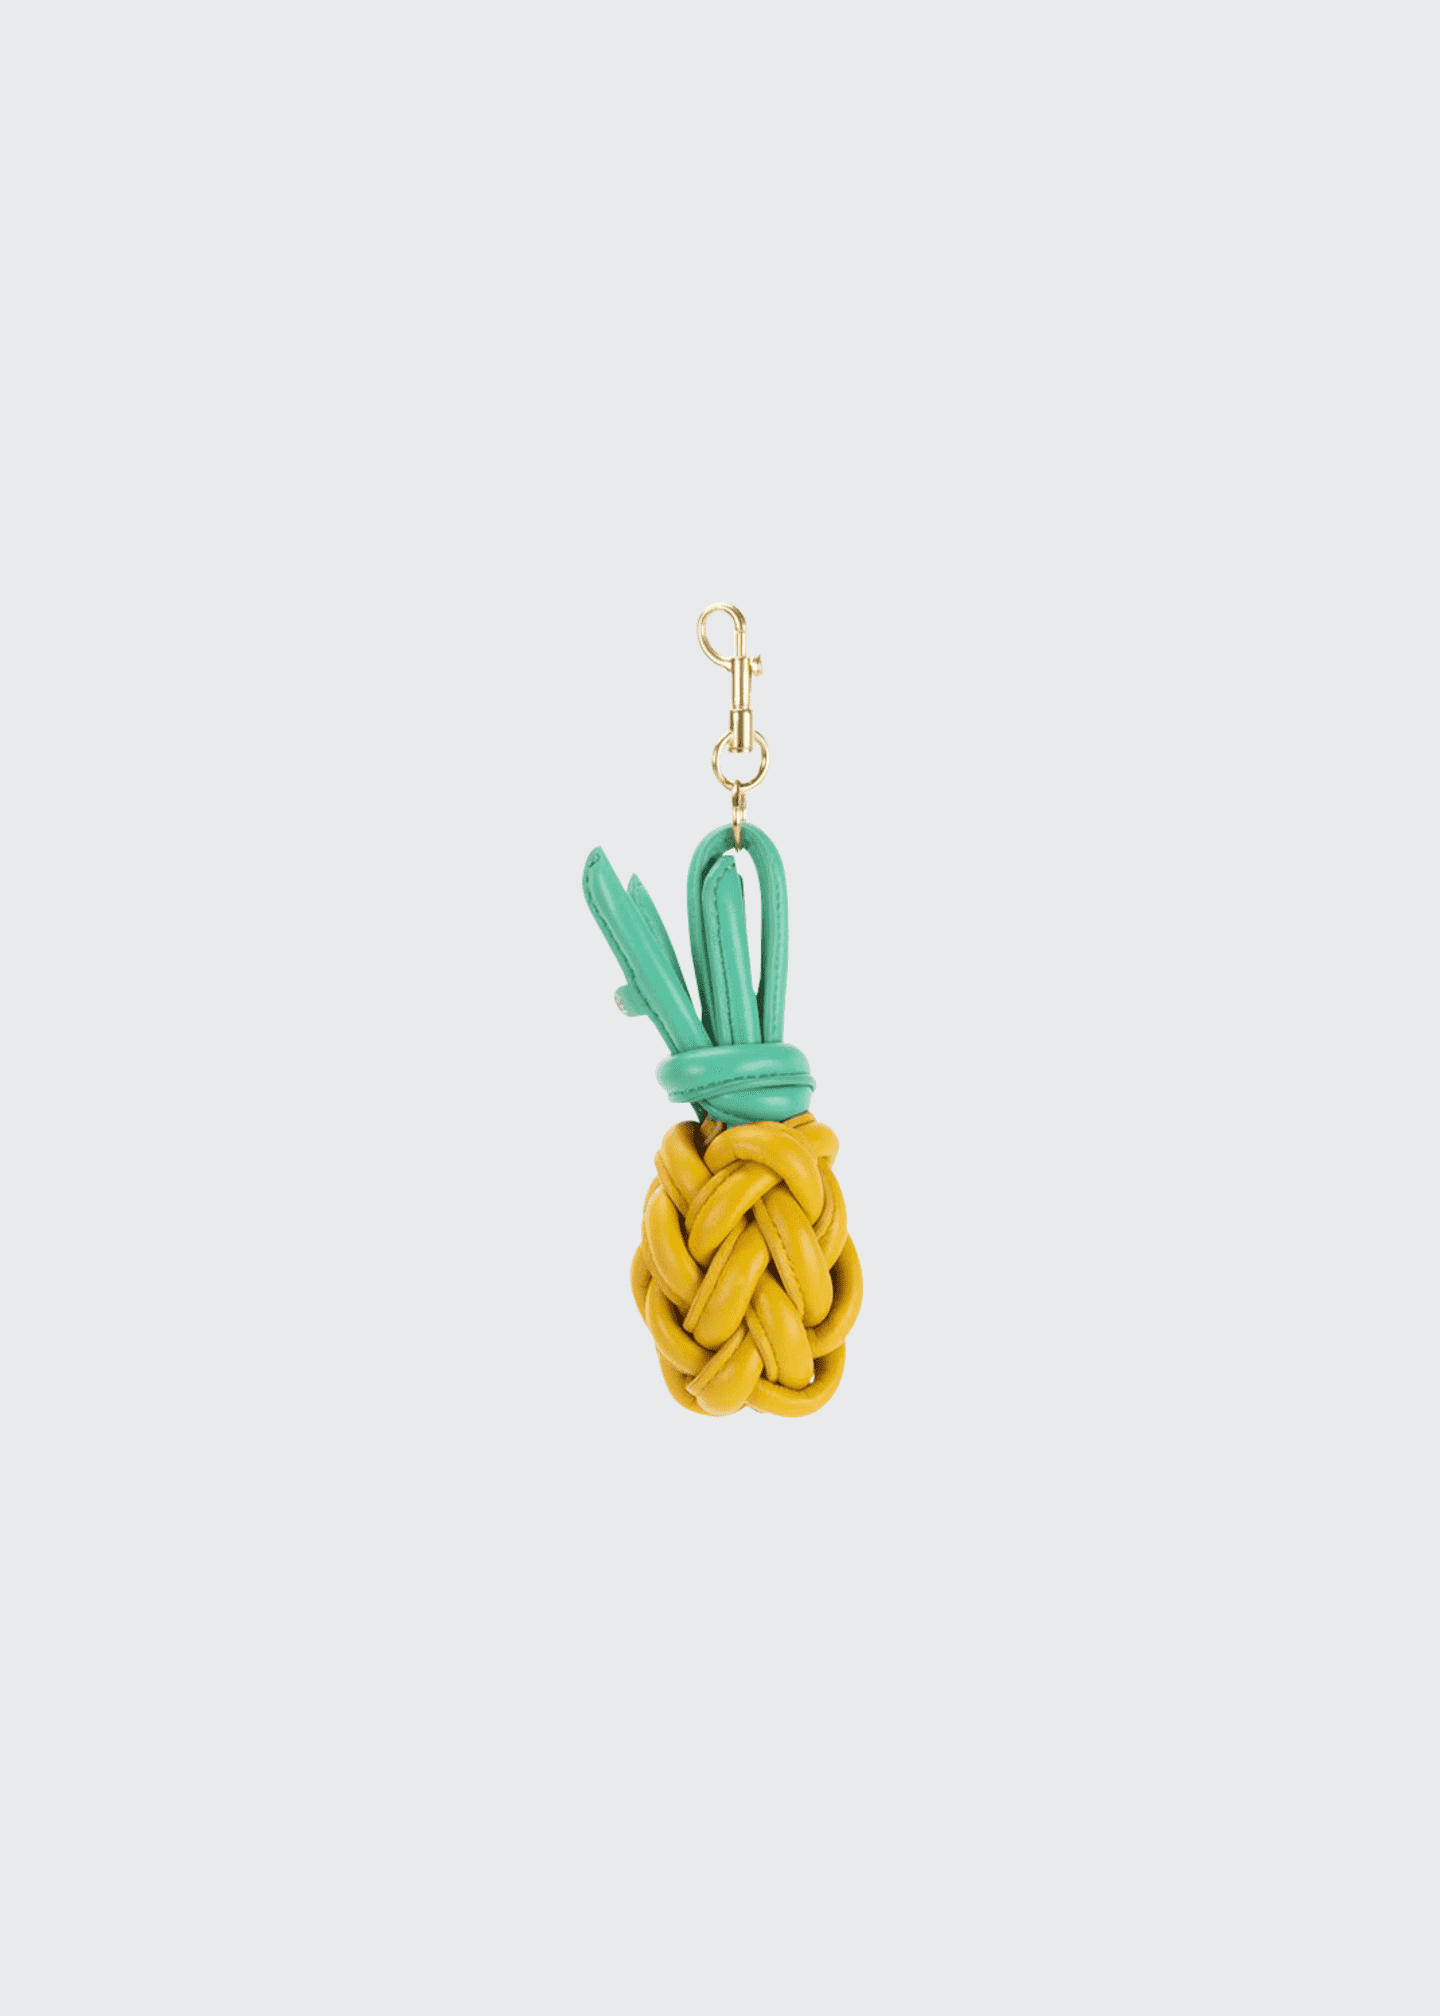 Anya Hindmarch Knotted Leather Pineapple Charm